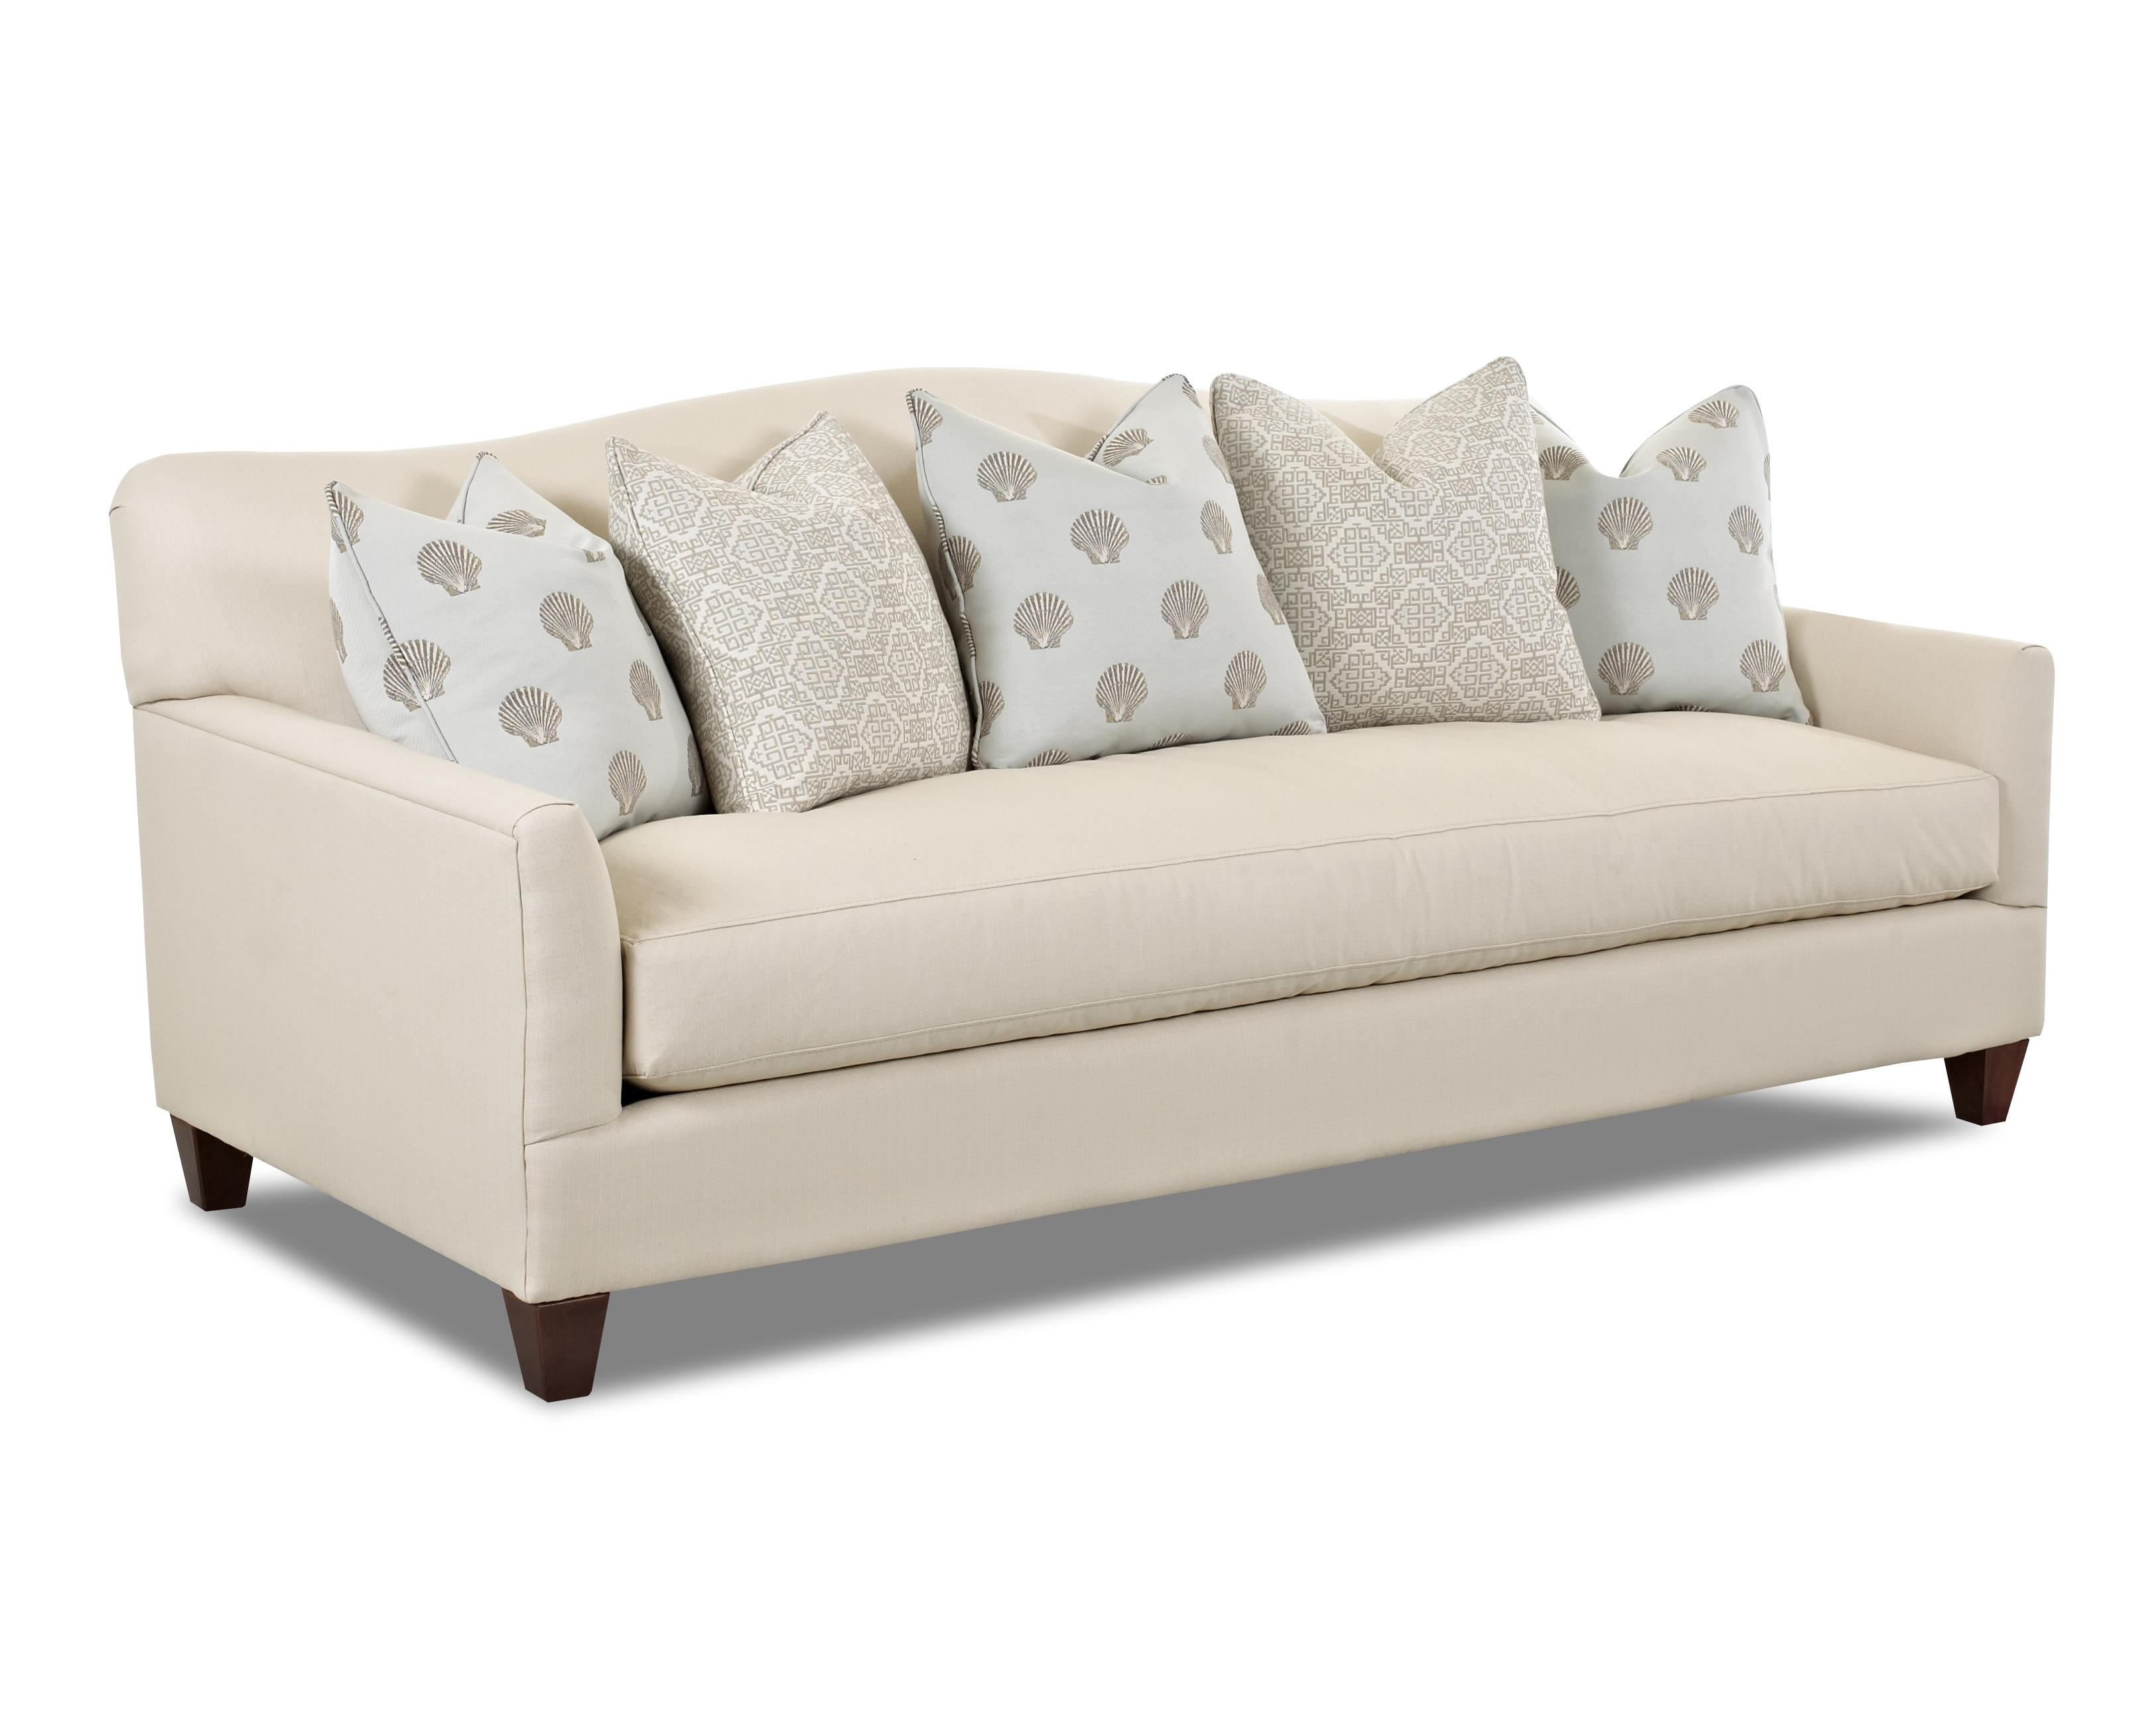 Sofa : products2Fklaussner2Fcolor2Fleighton20313d3130020s b3 from www.wolffurniture.com size 3250 x 2600 jpeg 404kB